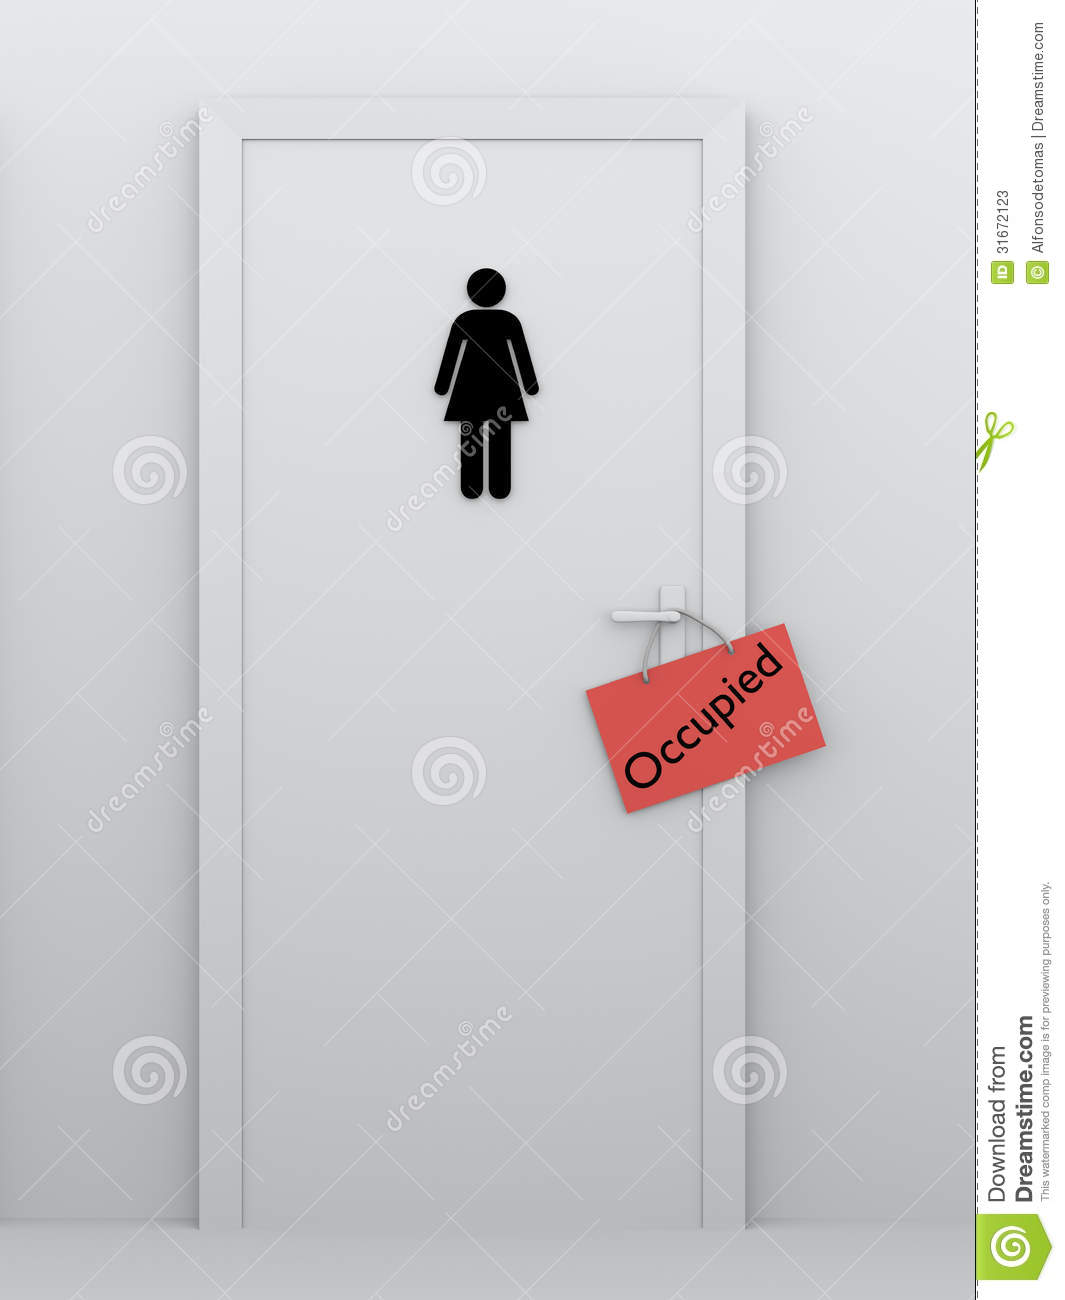 Toilet for women occupied stock photos image 31672123 for Bathroom occupied sign